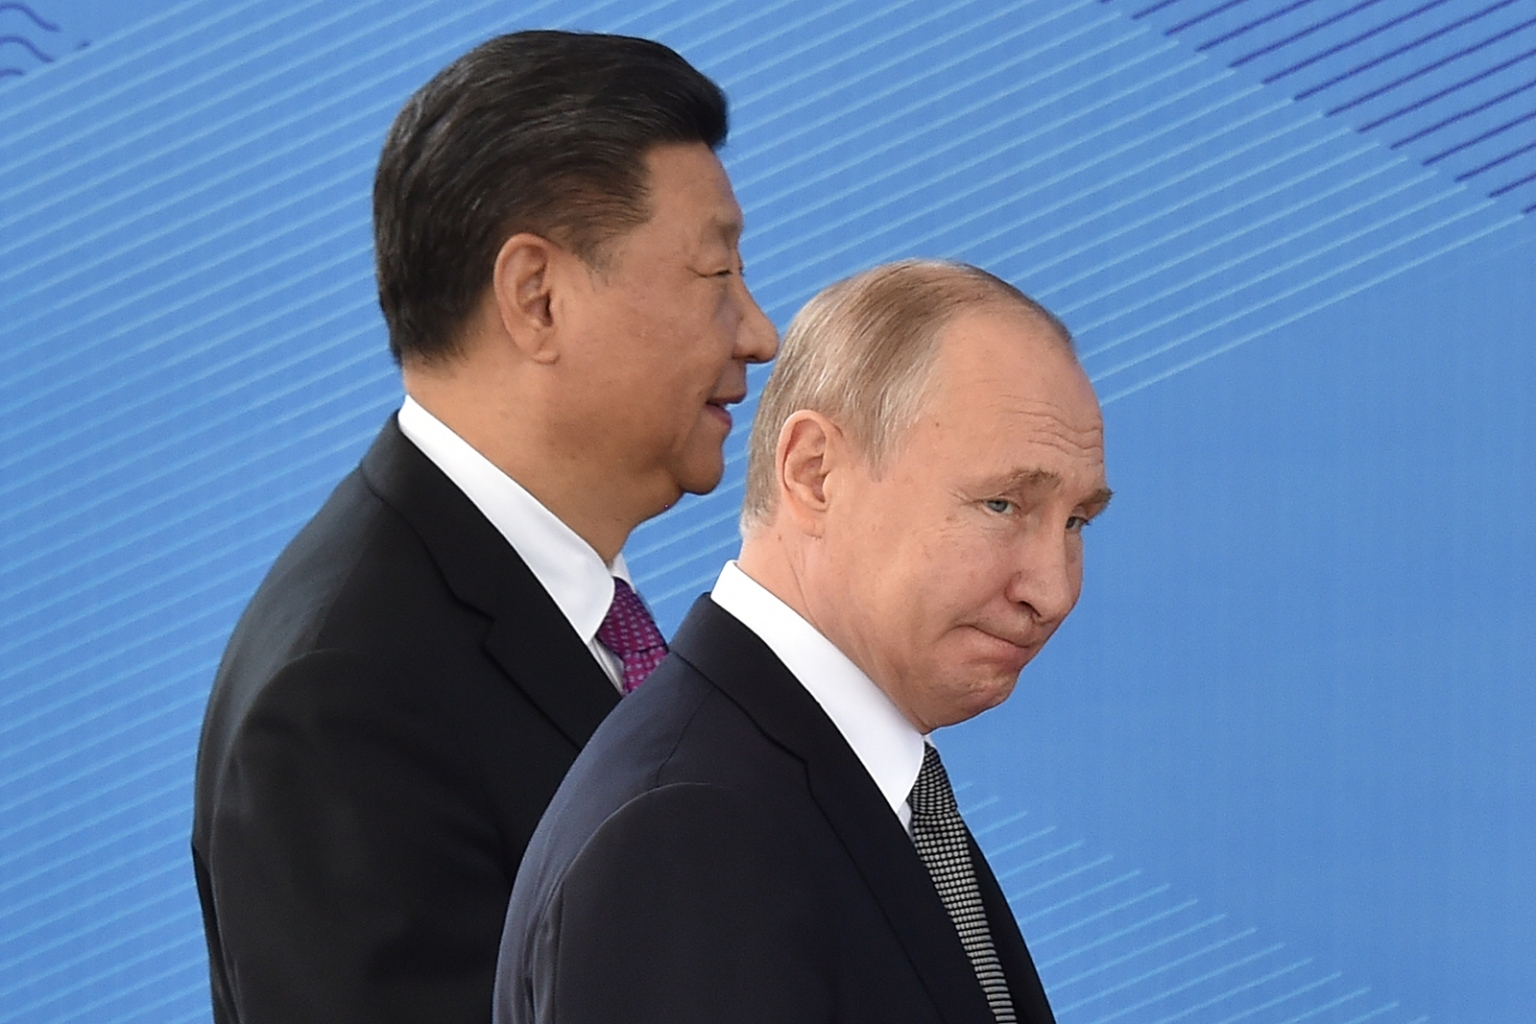 Russian President Vladimir Putin and Chinese President Xi Jinping attend a meeting of the Shanghai Cooperation Organisation Council of Heads of State in Bishkek, Kyrgyzstan, on June 14. VYACHESLAV OSELEDKO/AFP/Getty Images